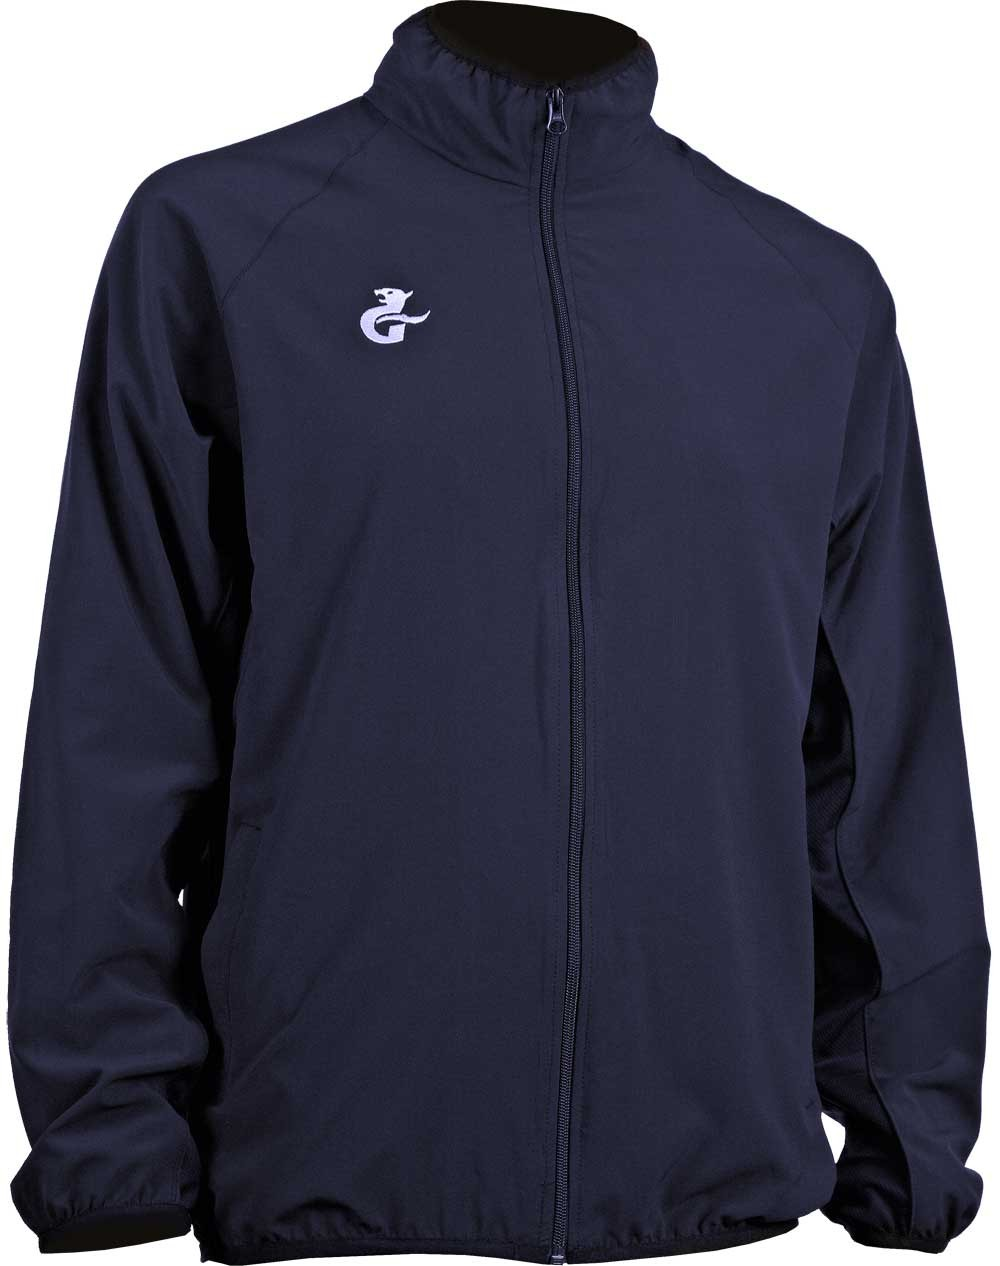 Gryphon Womens Essential Training Jacket